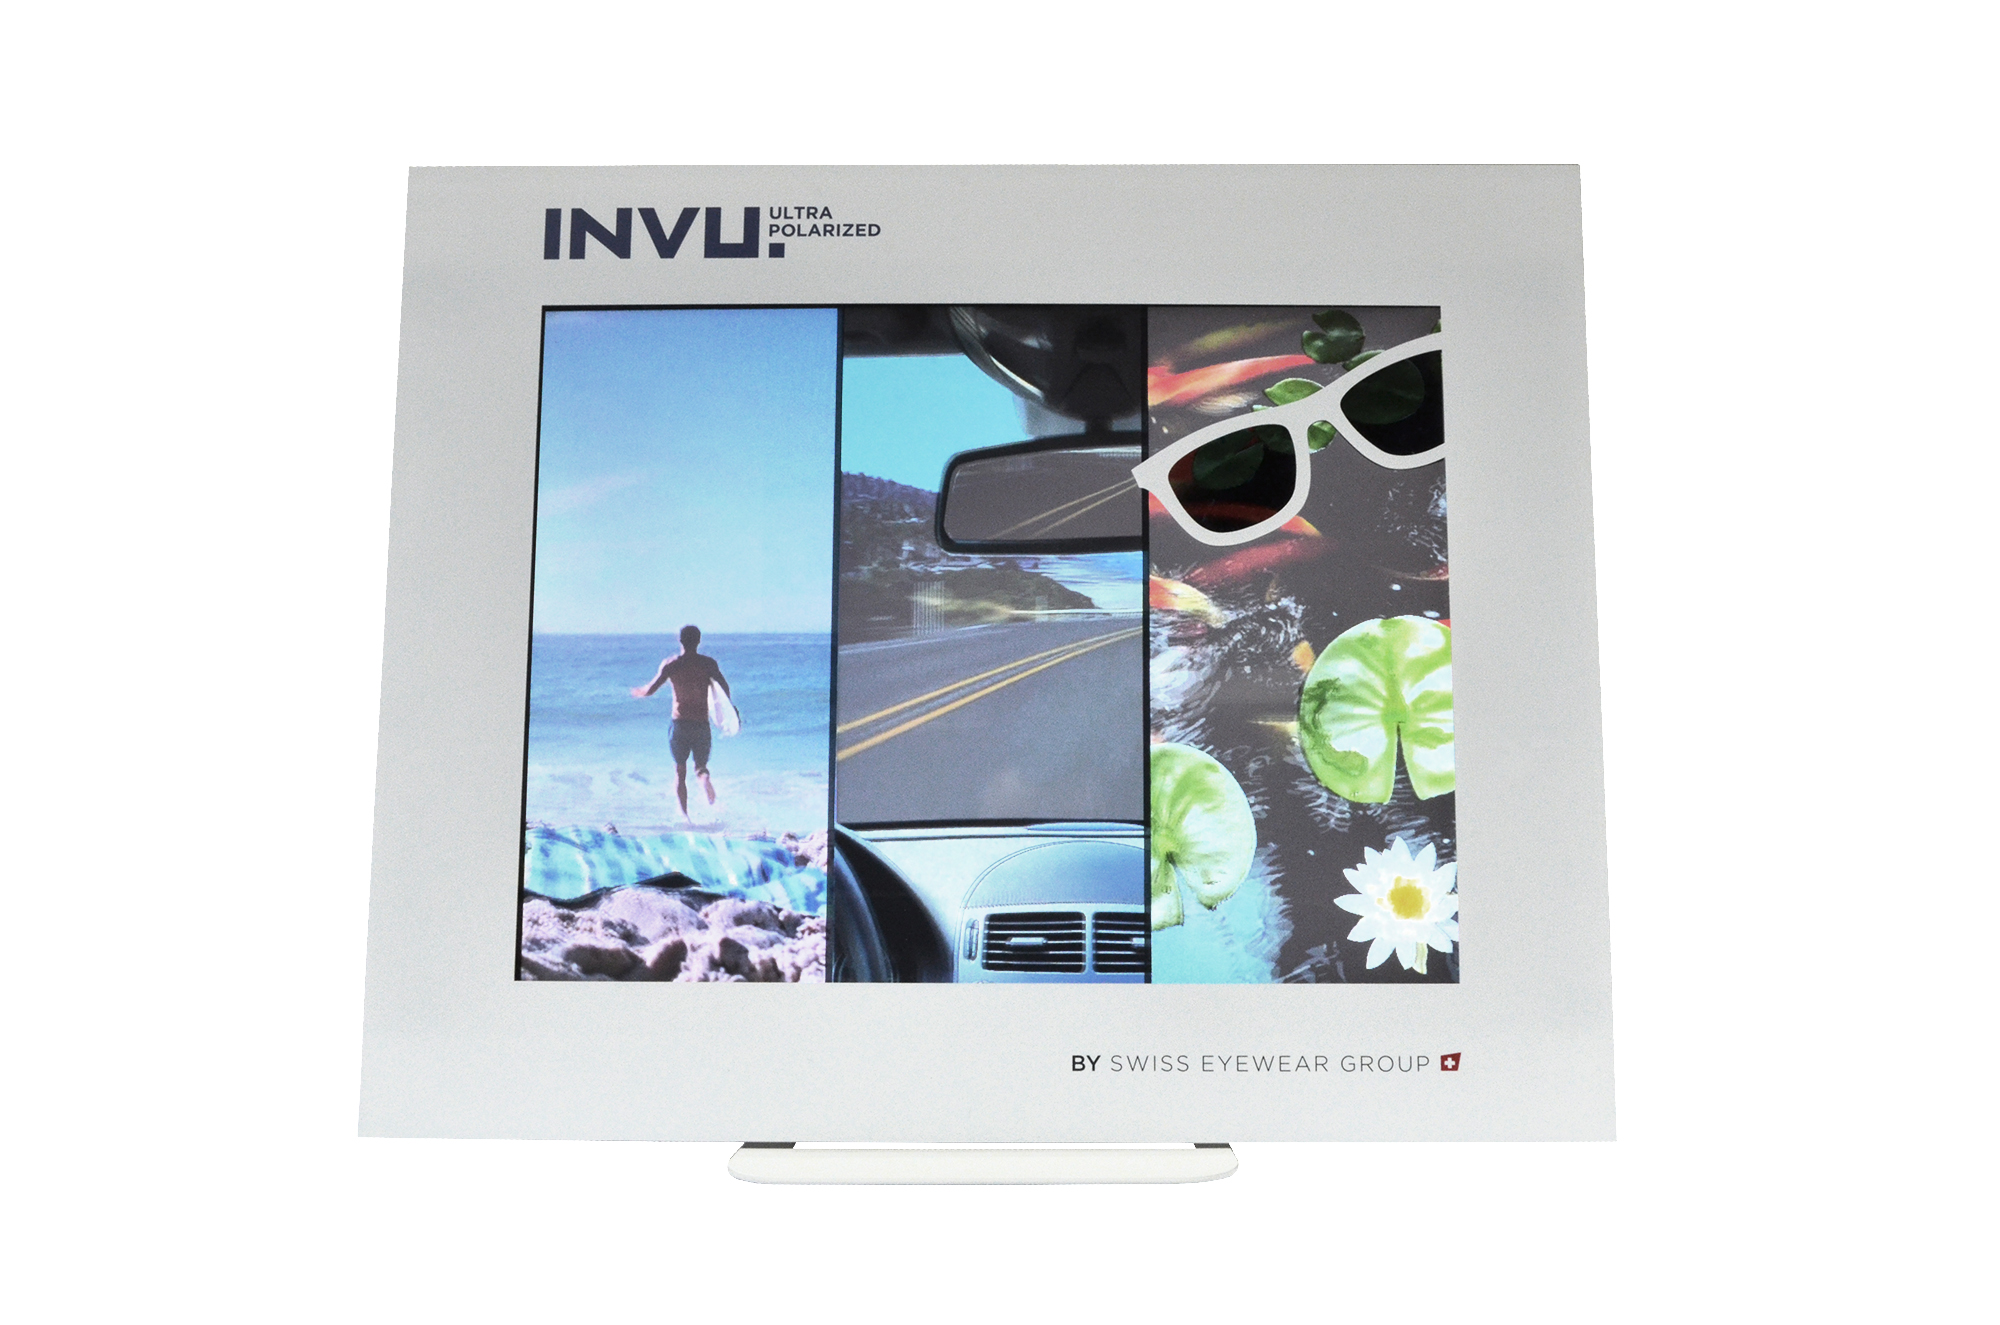 INVU Movie Display with Pola effect